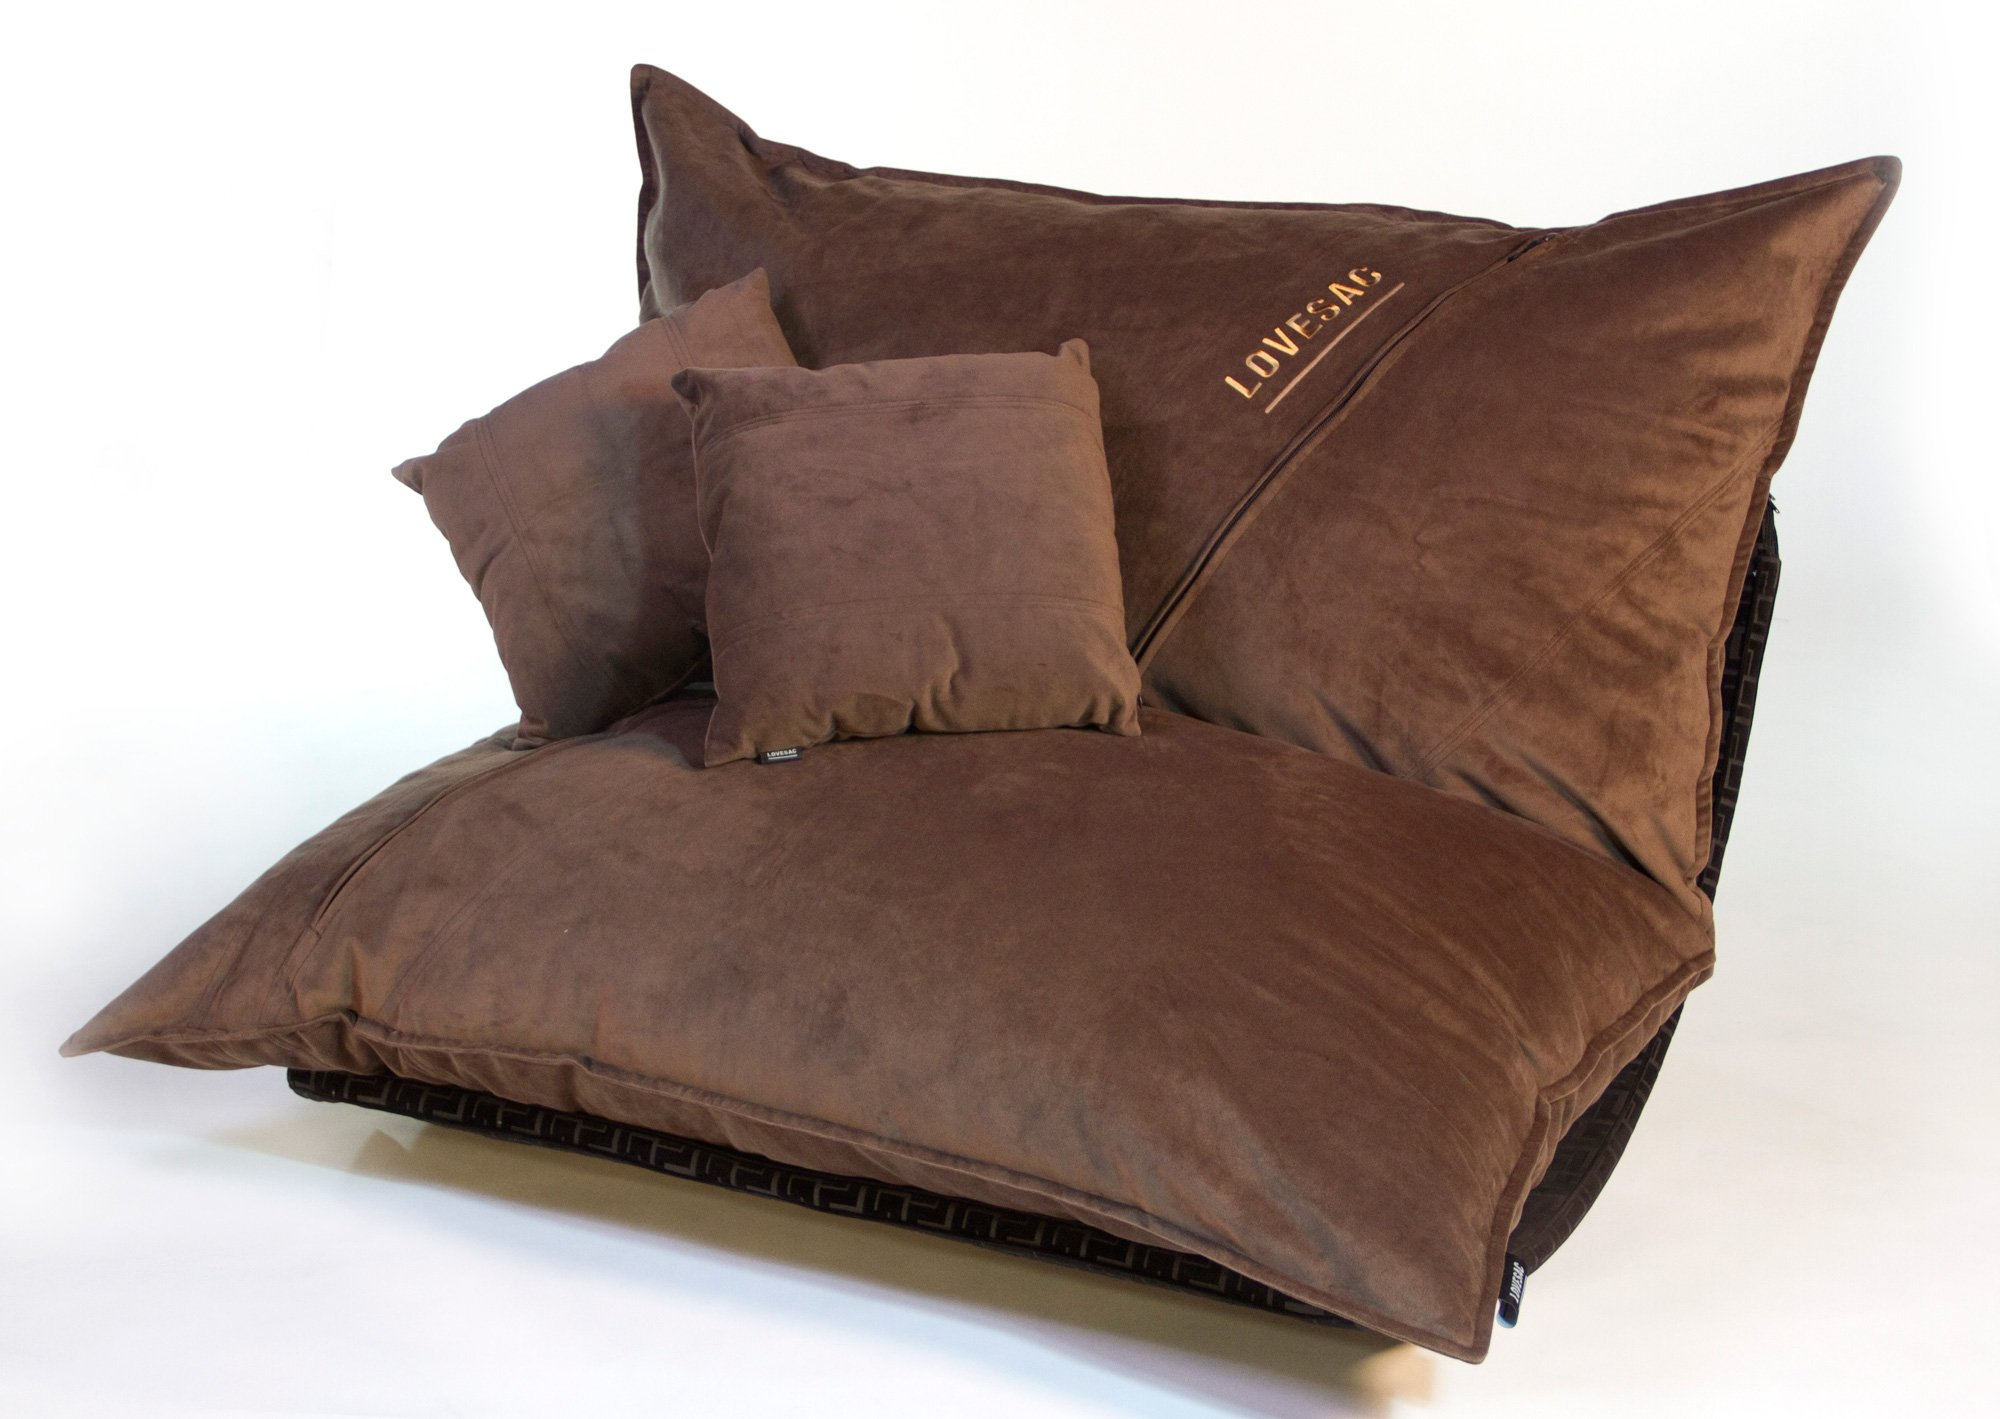 oversized chair cushions gaming accessories coffee velvish pillowsac package original sac